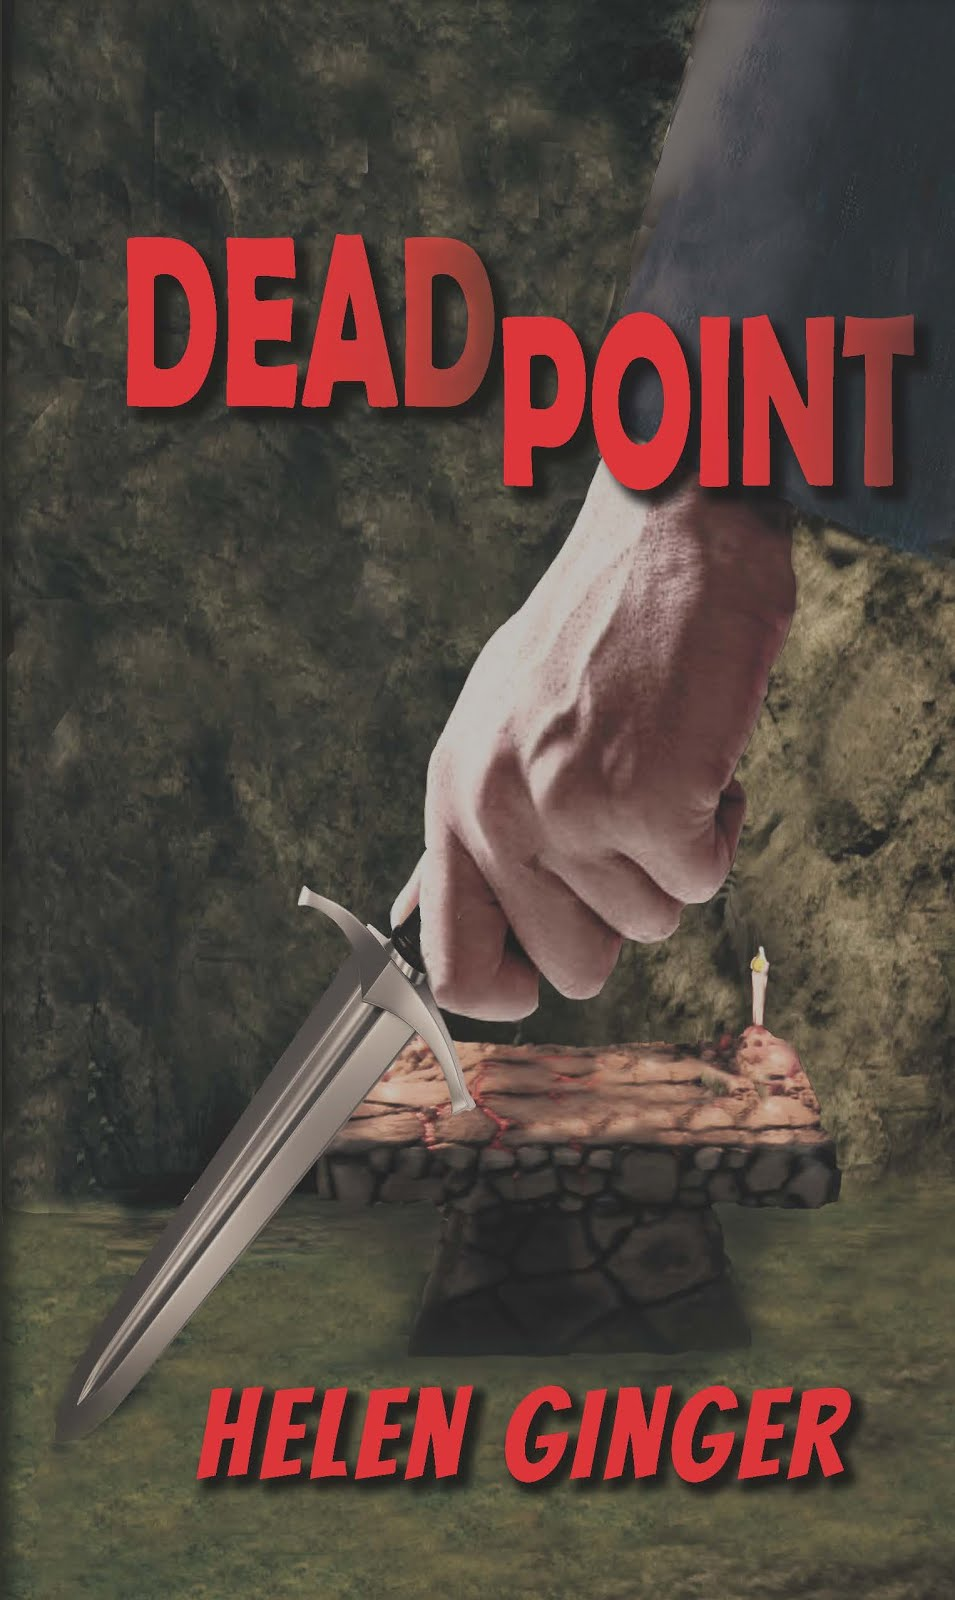 DeadPoint by Helen Ginger